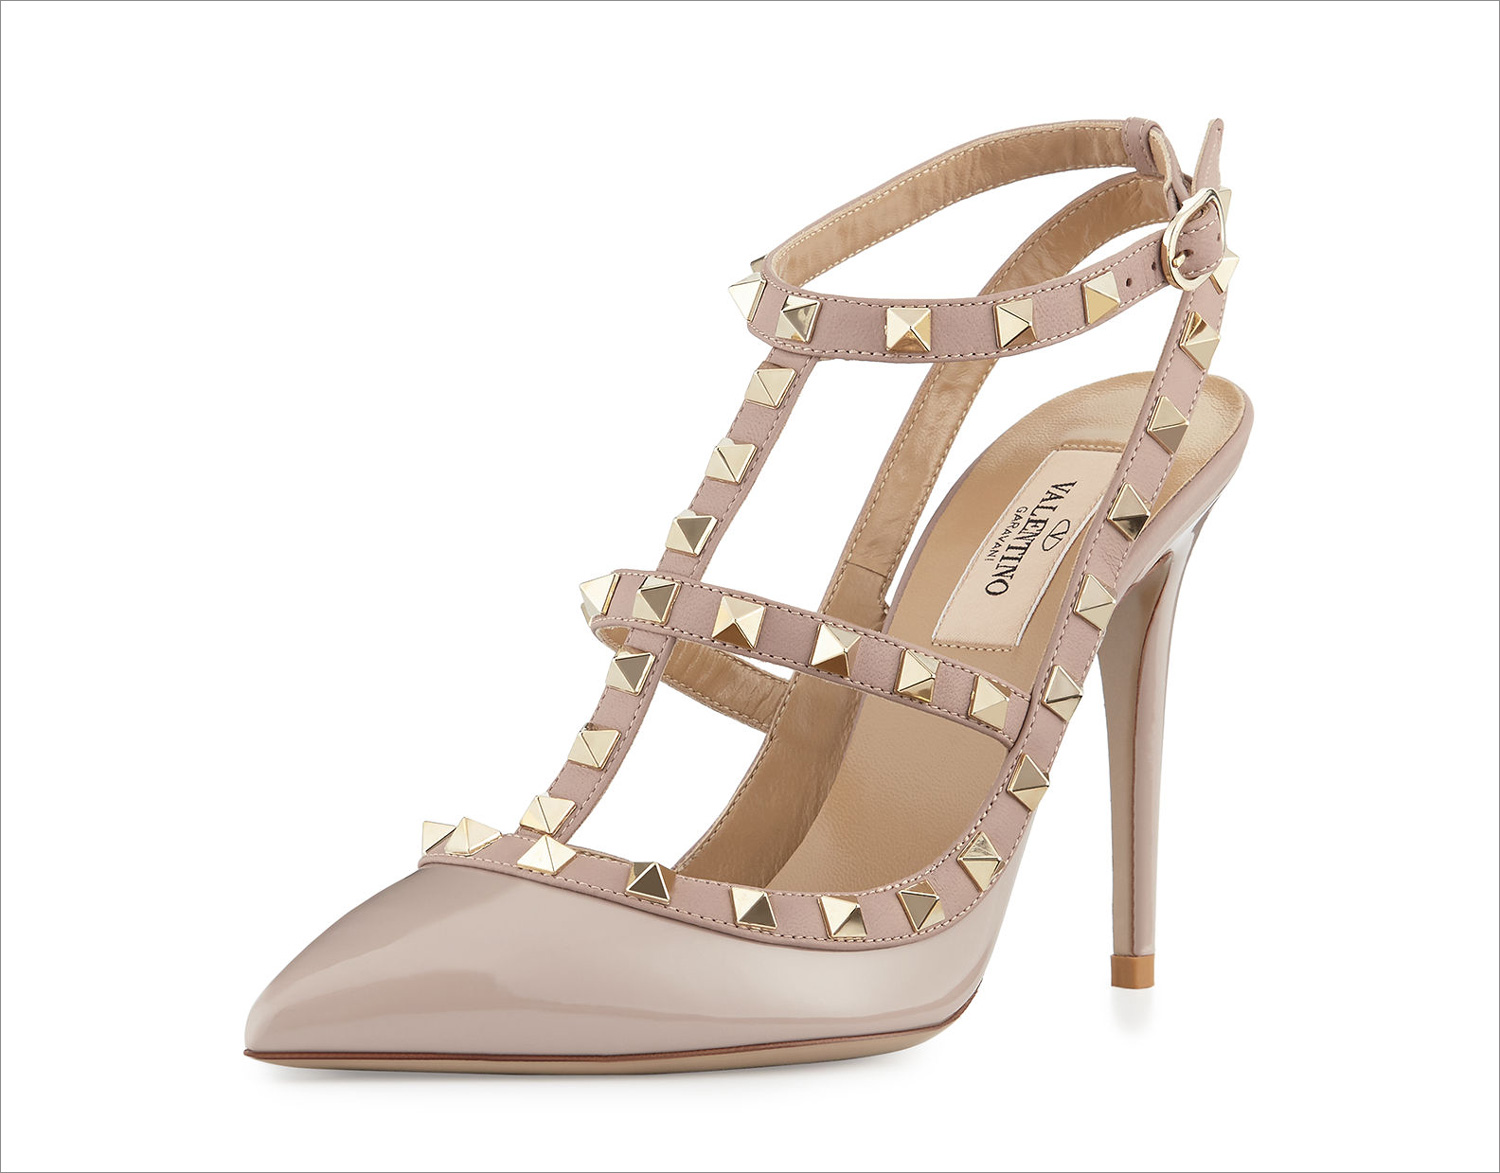 Popular wedding shoes valentino pump with studs slingback sling back